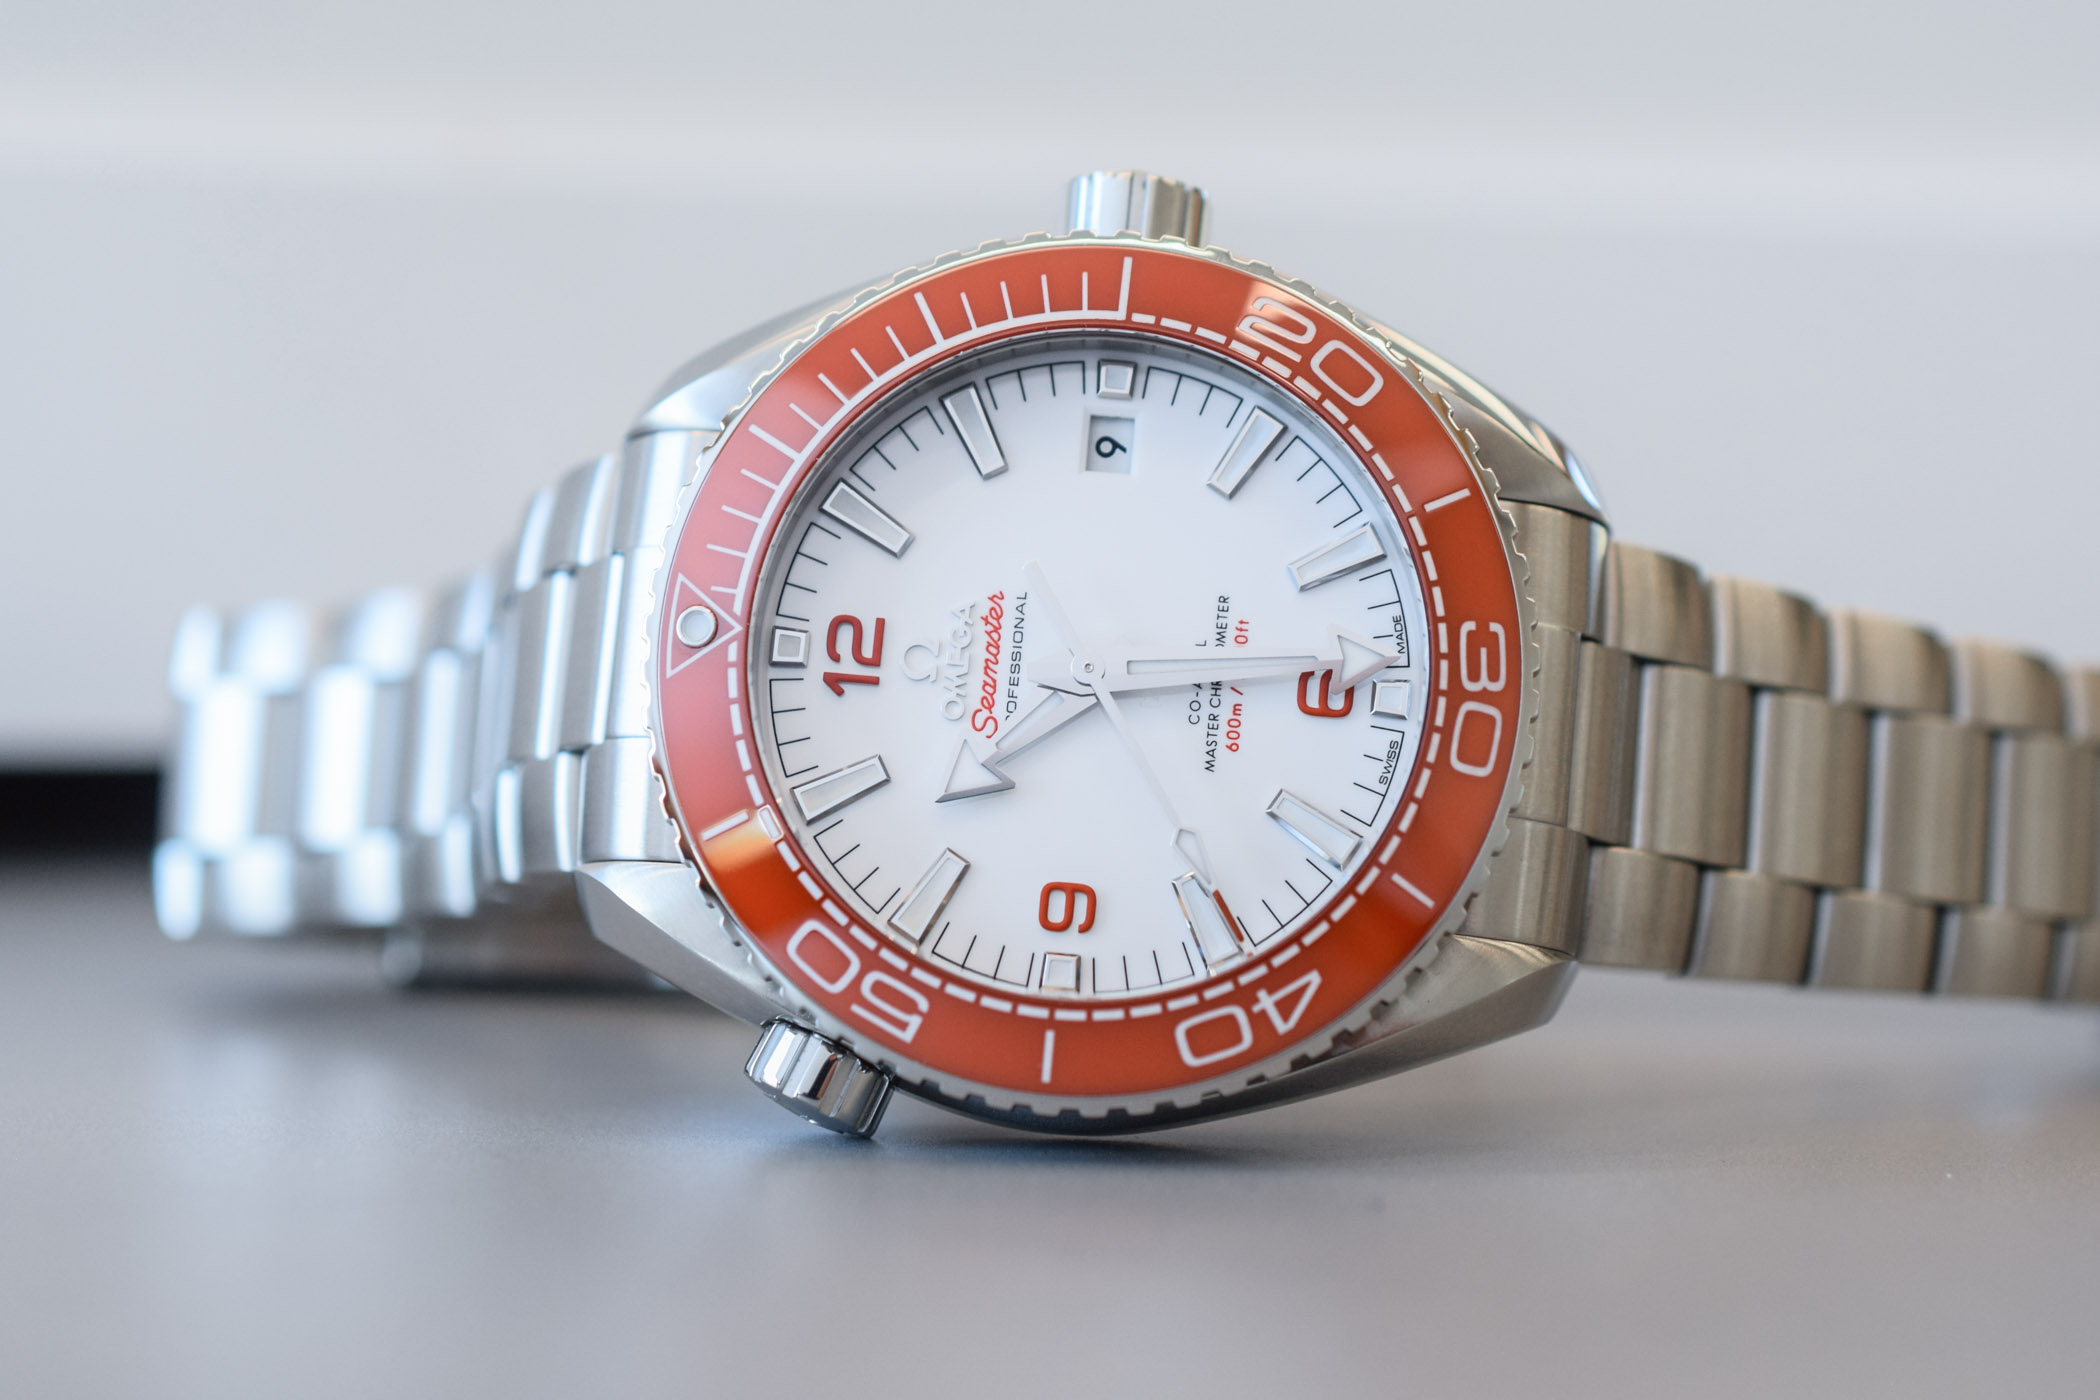 Omega Seamaster Planet Ocean 600m Orange Bezel White dial 215.30.44.21.04.001